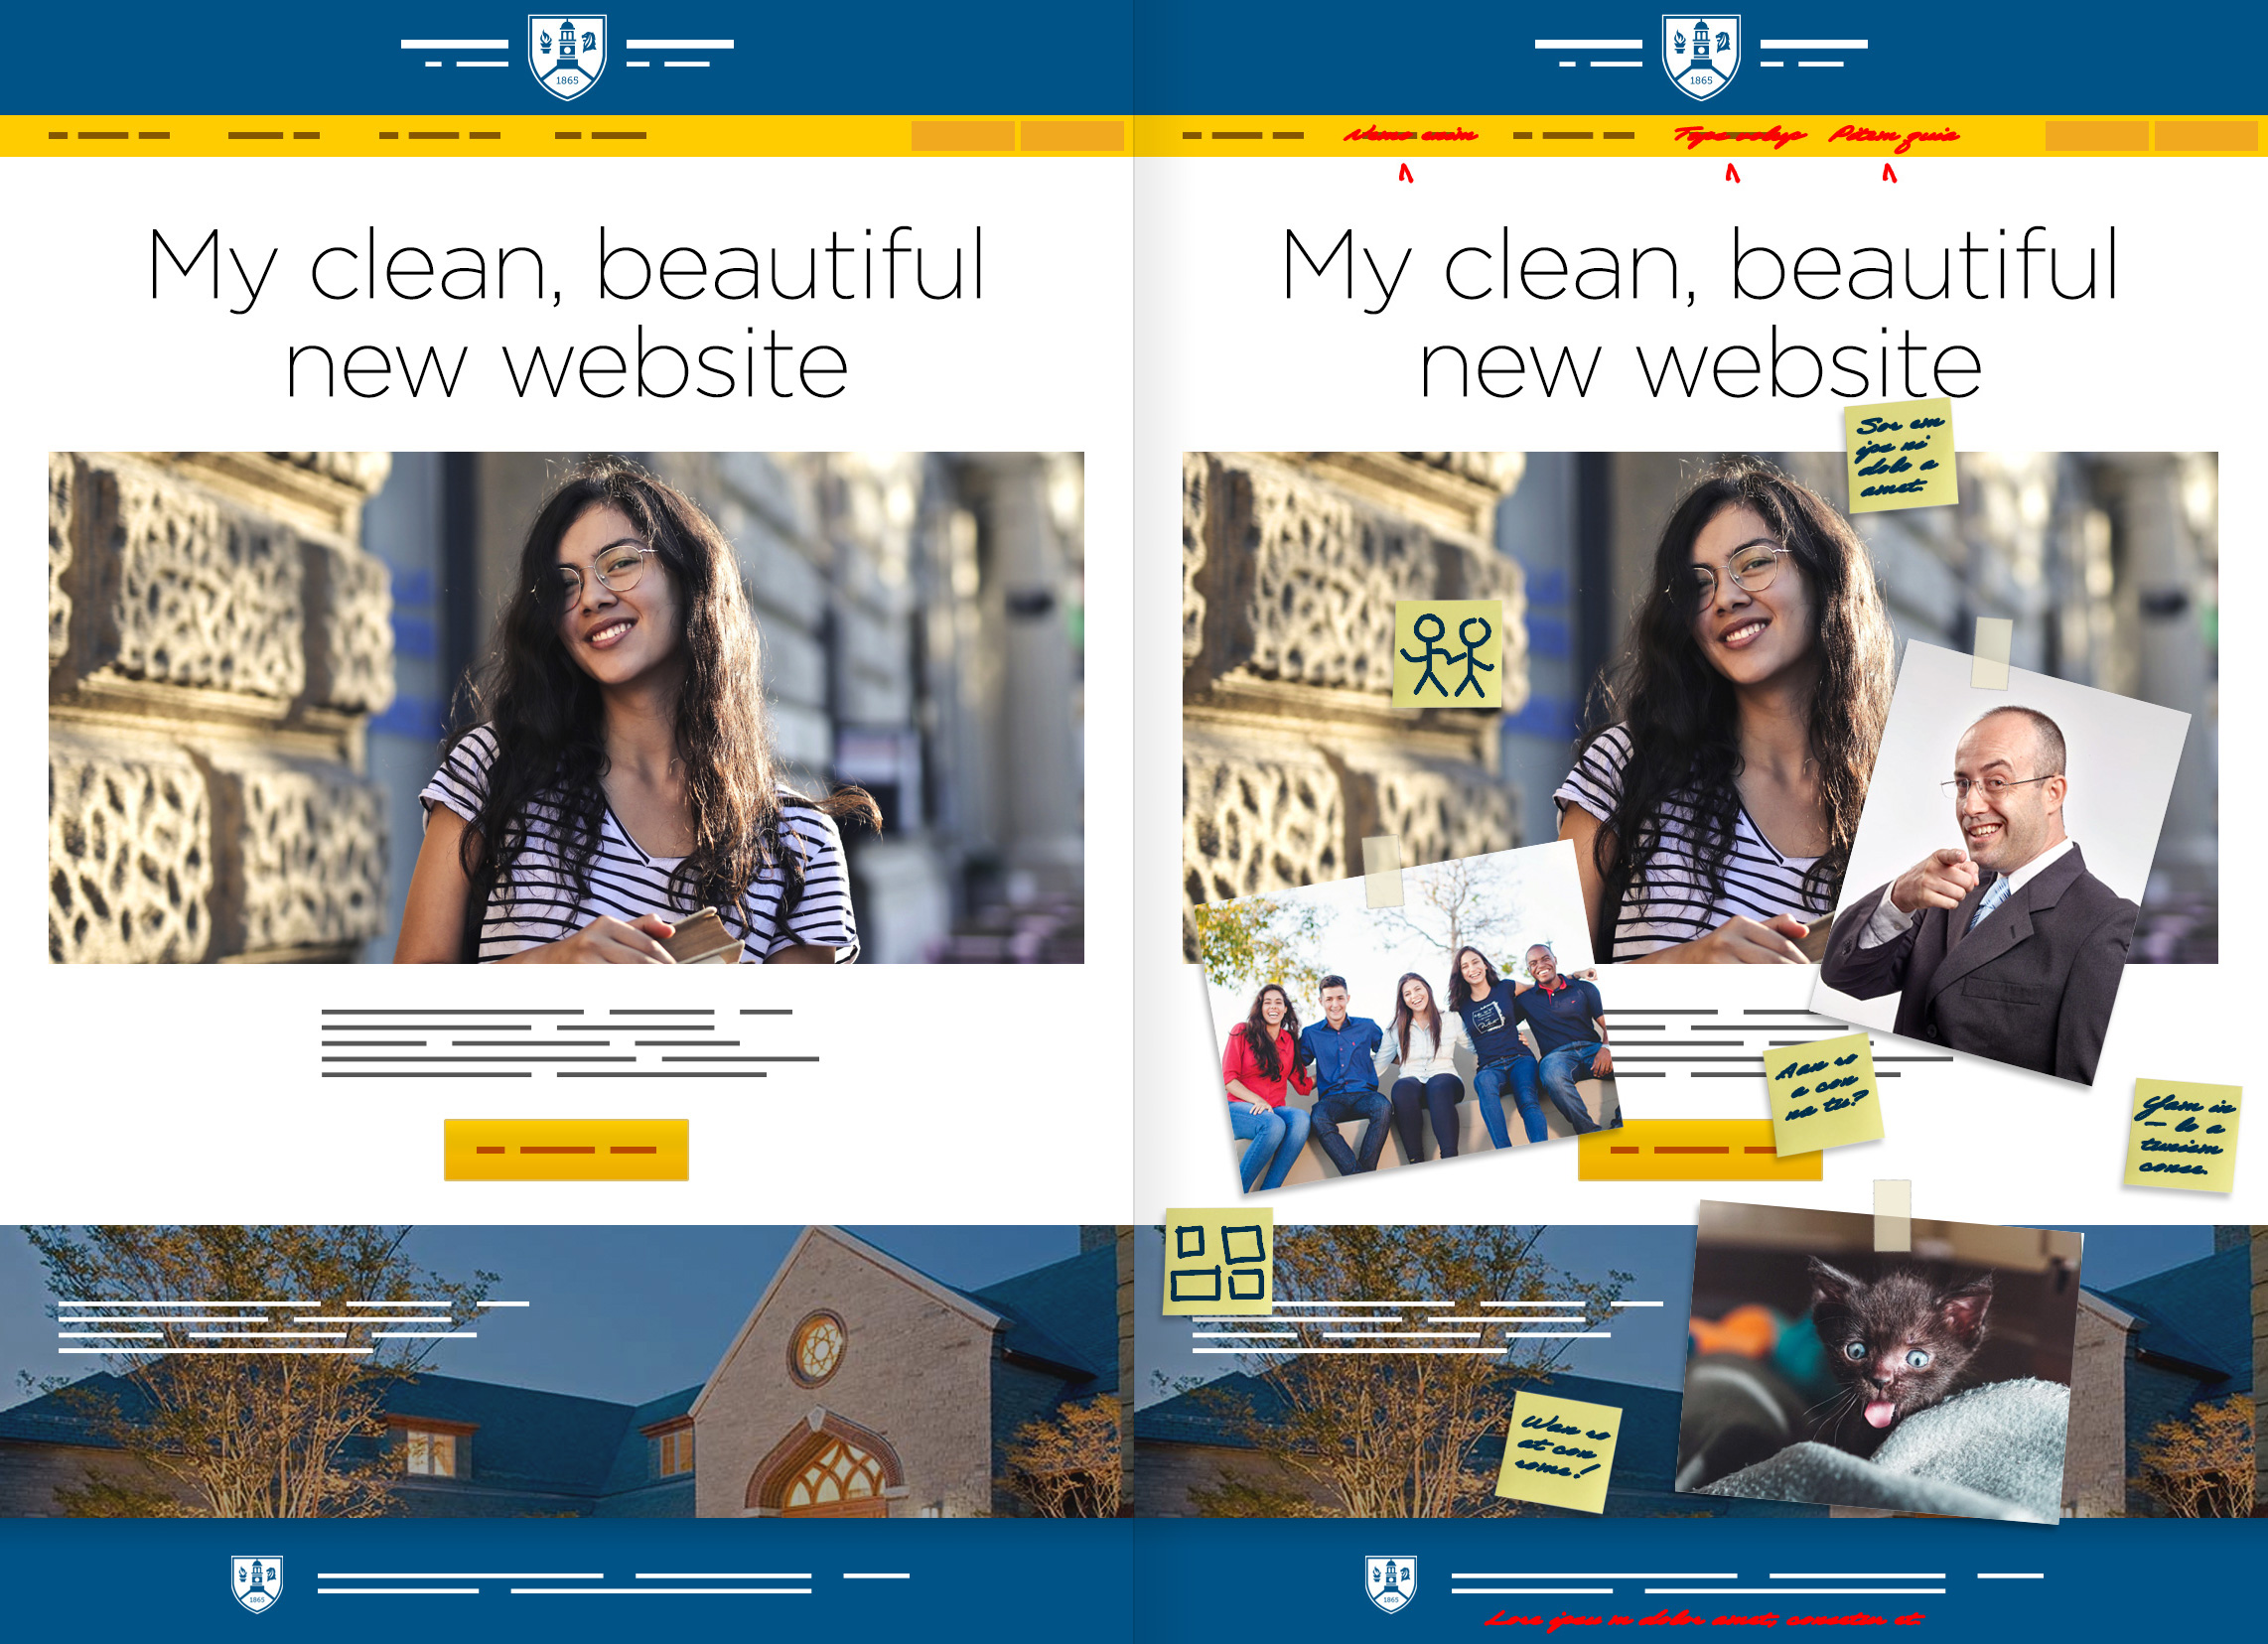 An example of a university website redesign showing a before and after mock-up of the homepage.